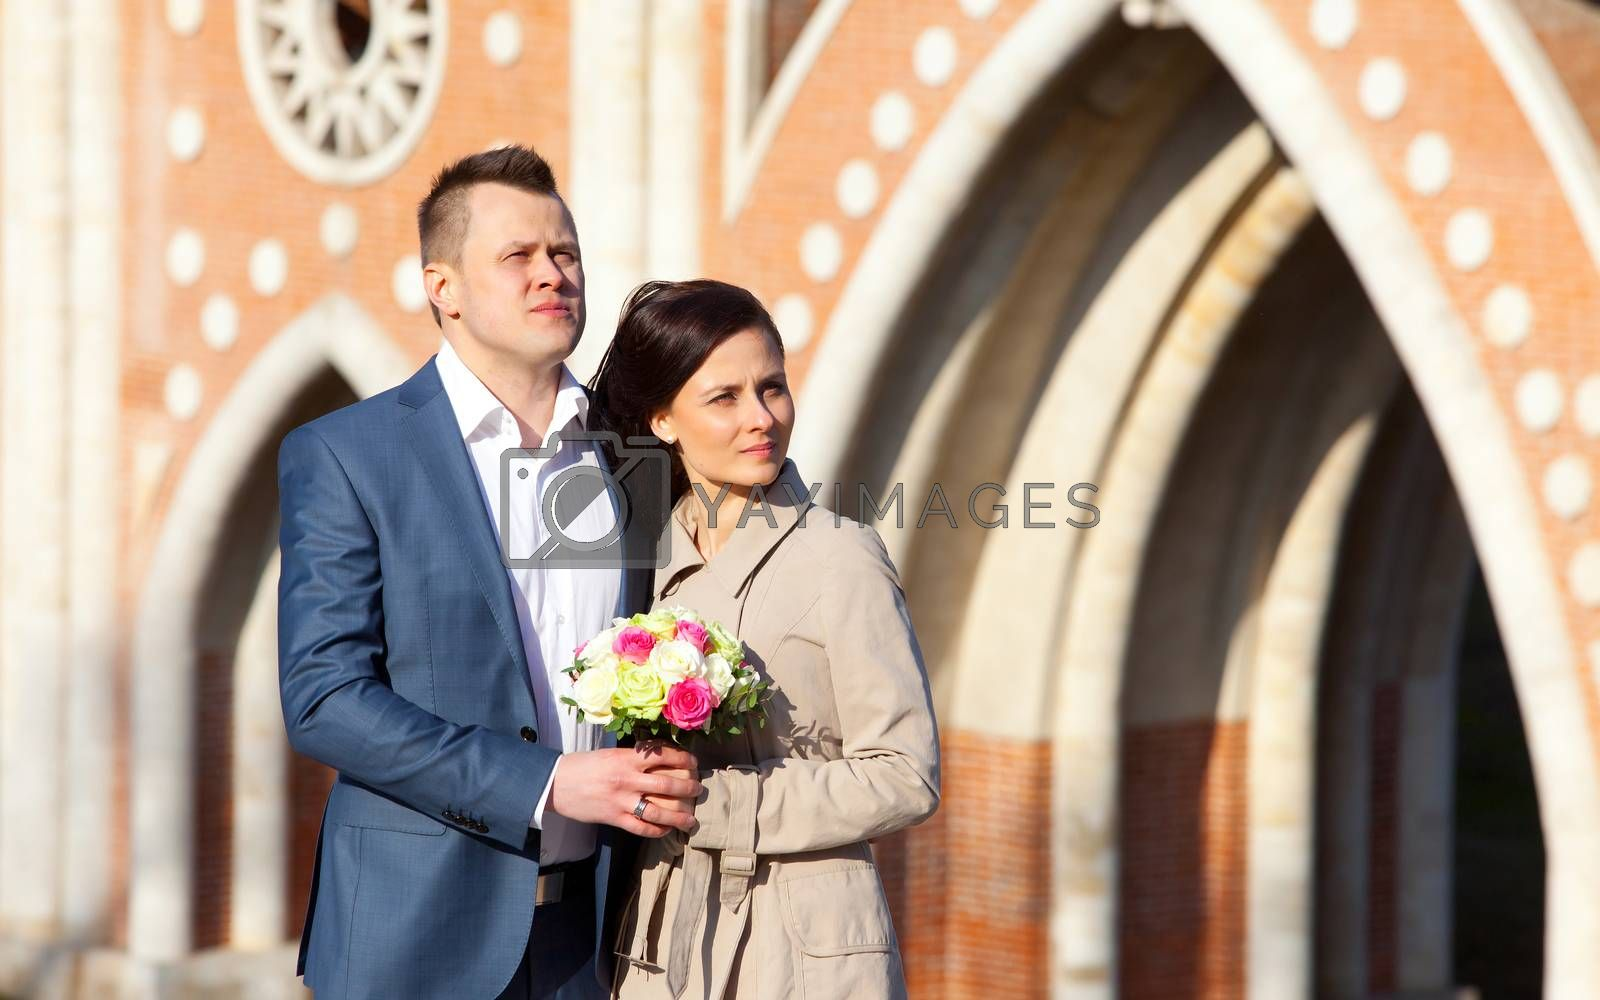 bride and groom on a architectura vintage background